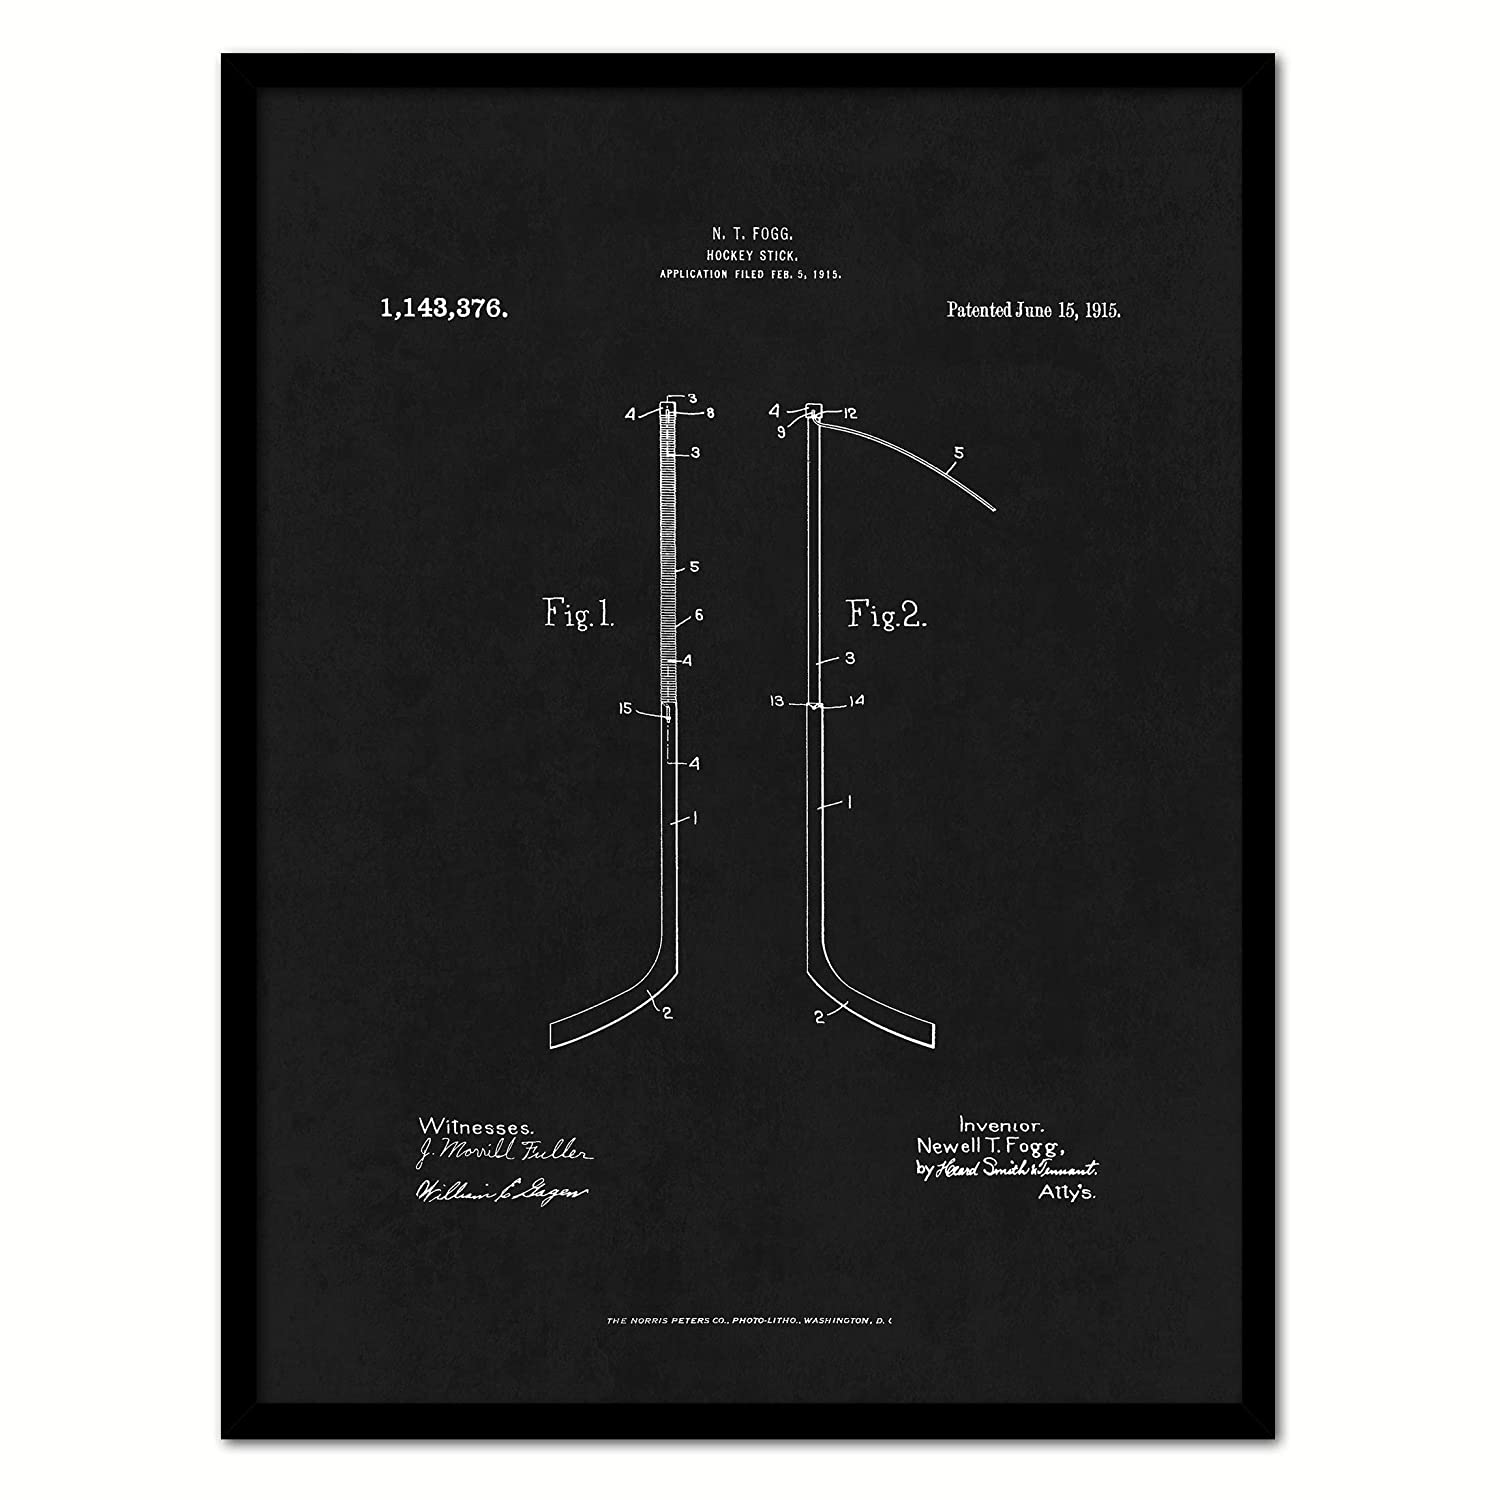 "1915 Hockey Stick US Patent Canvas Print, Art, Vintage, Modern, Urban, Wall Decor, Accents, Home Decor, Business, Accents, Ready to Hang, Black Frame, 22"" x 29"""